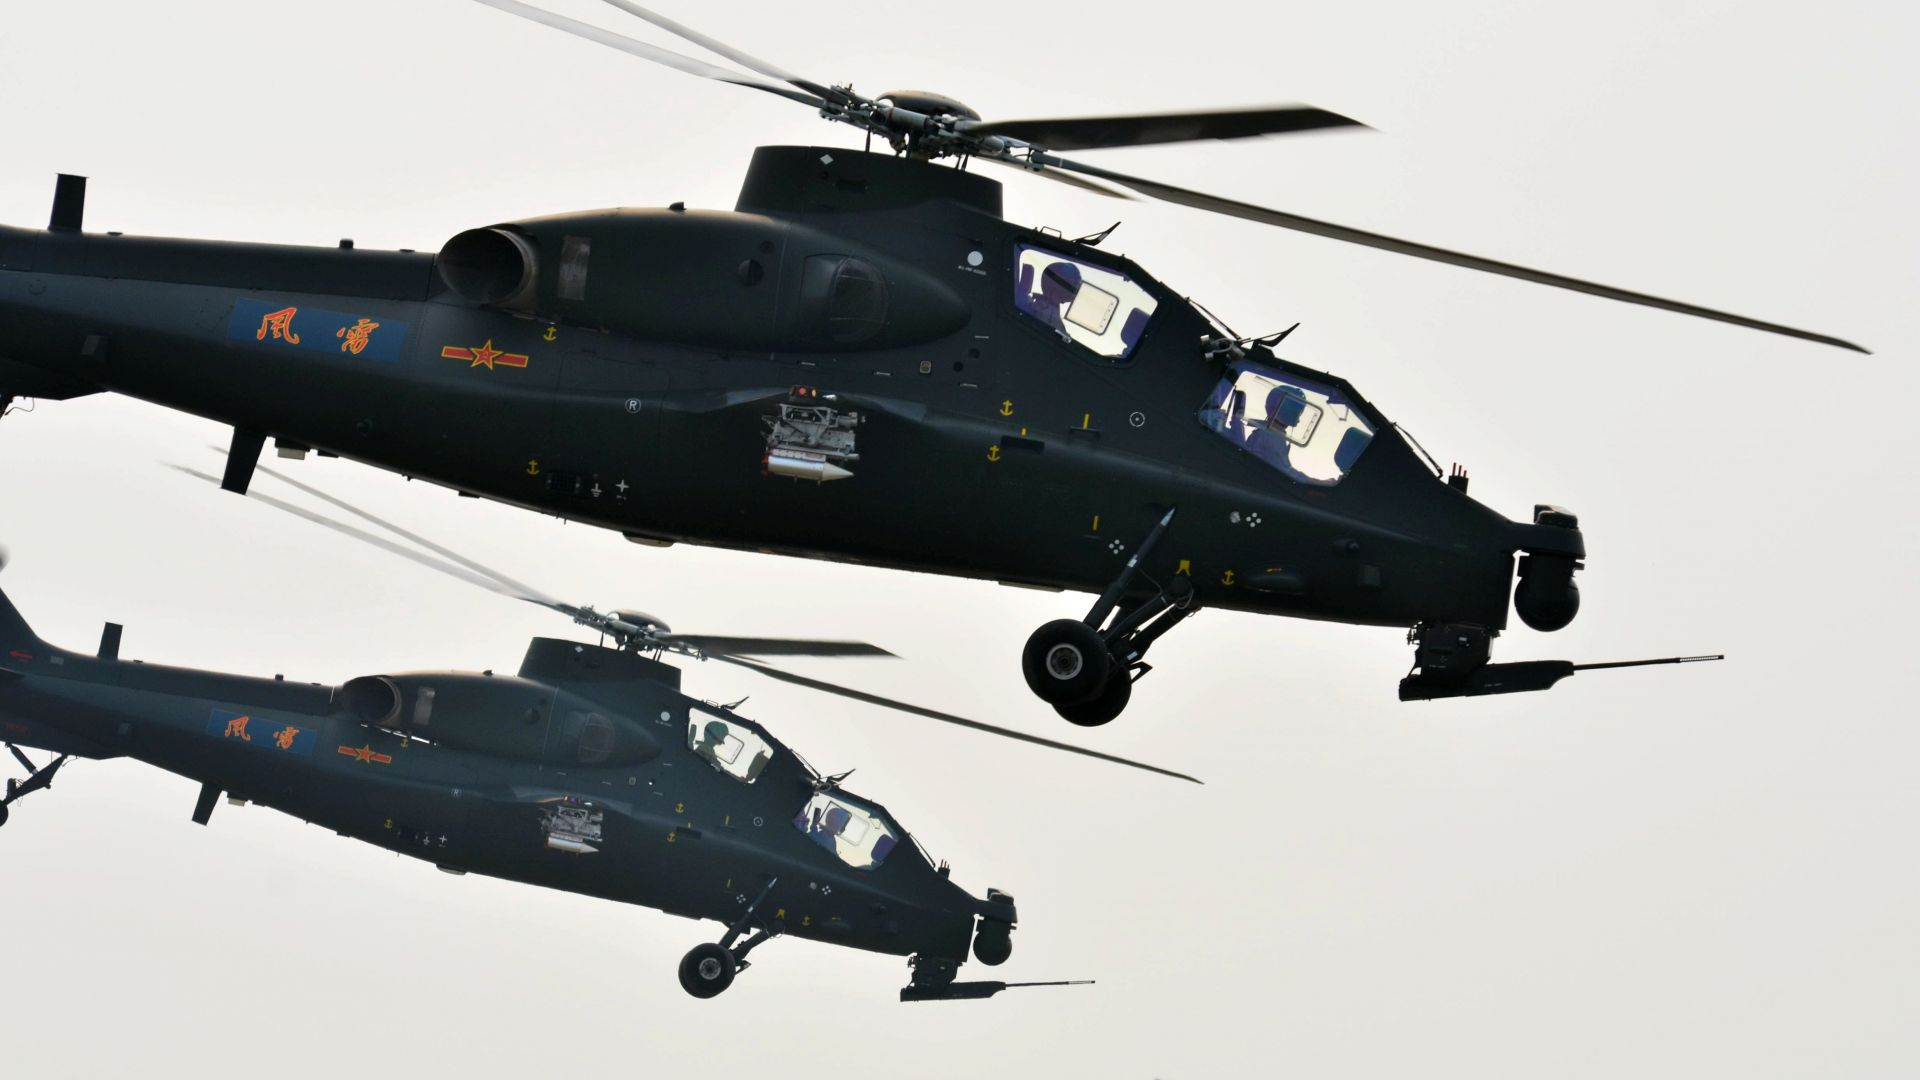 CAIC Z-10, attack helicopter, China Air Force (horizontal)